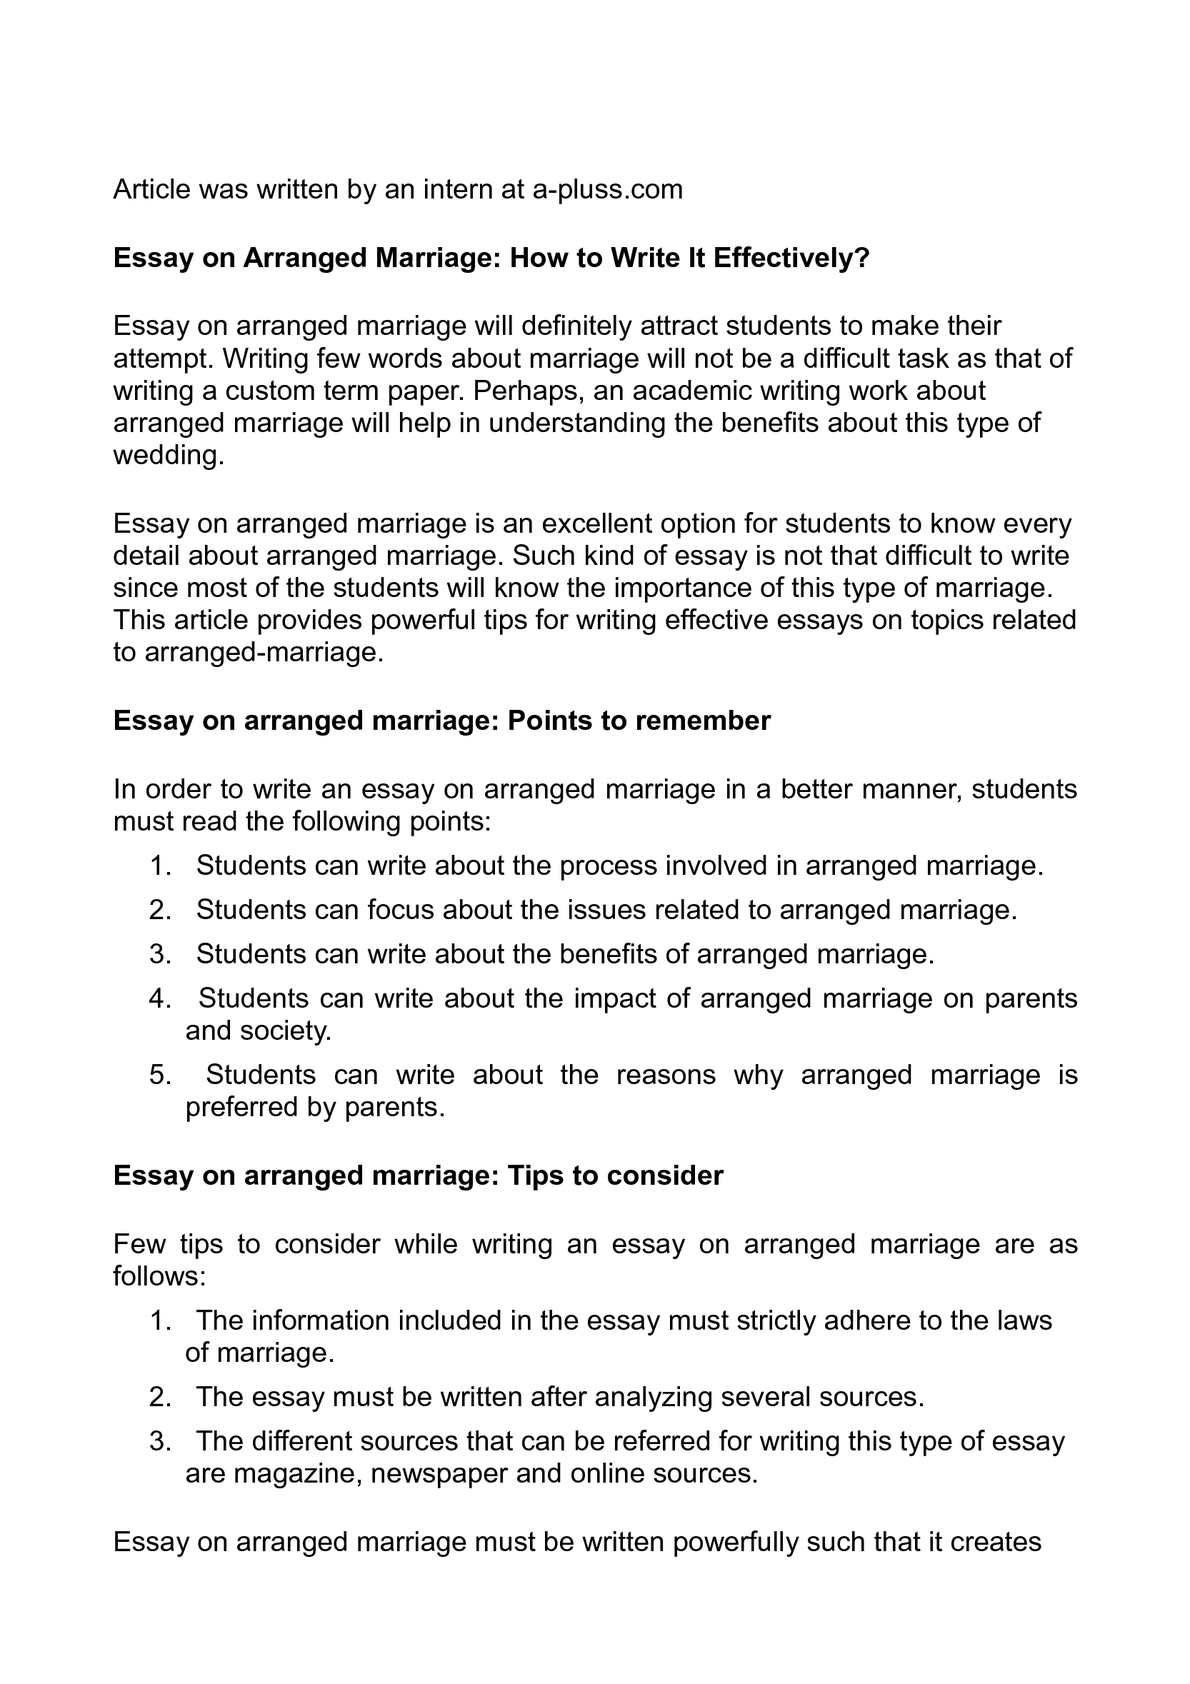 Calameo Essay On Arranged Marriage How To Write It Effectively